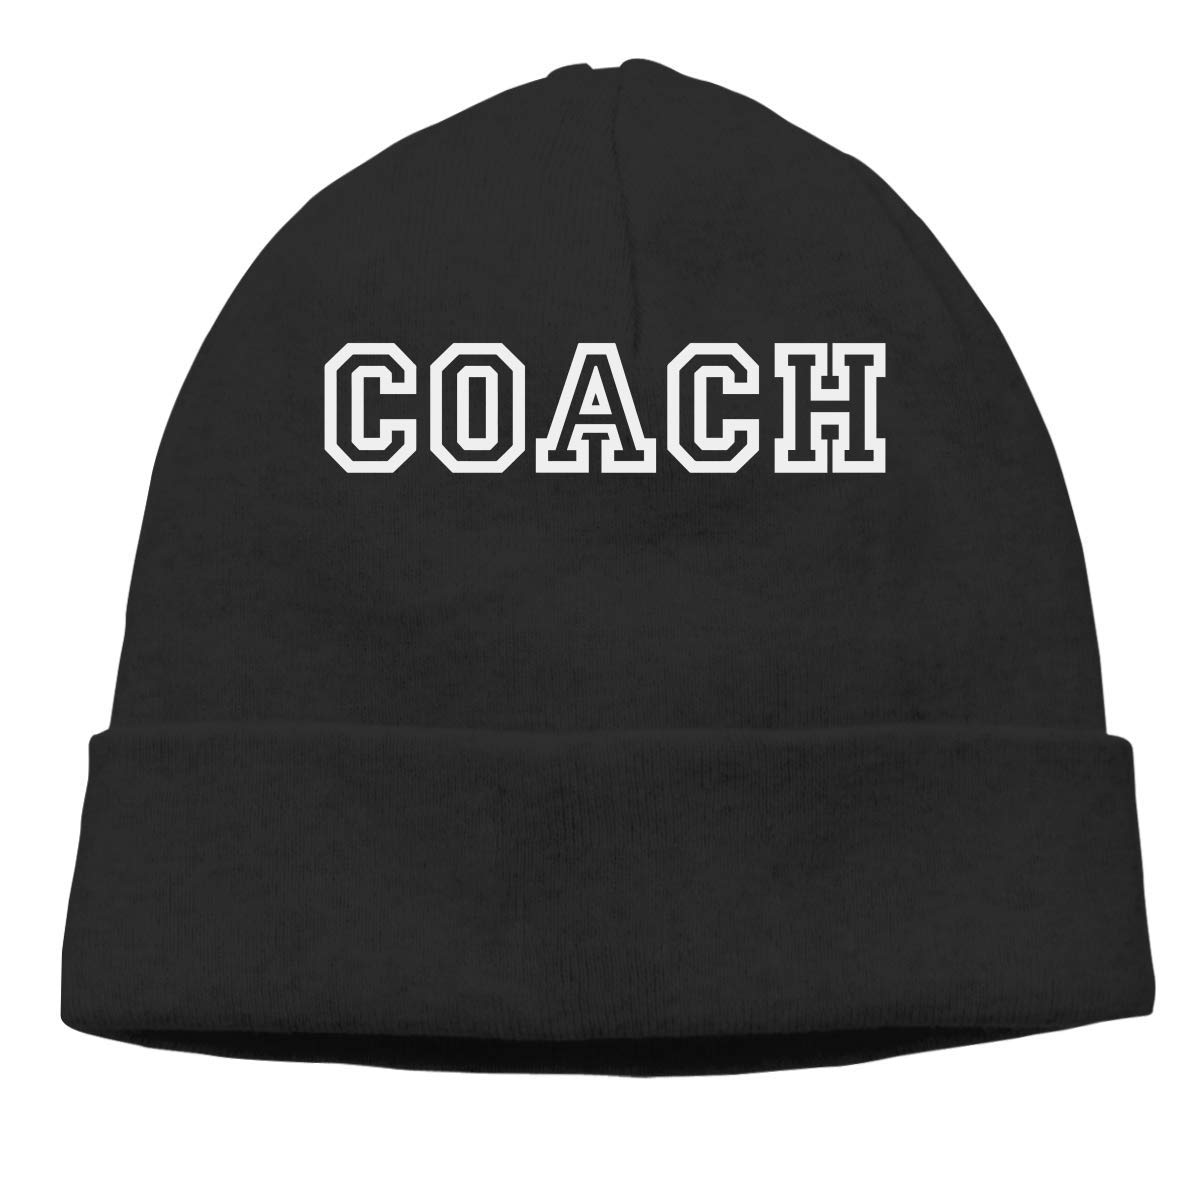 Coach Warm Stretchy Solid Daily Skull Cap Knit Wool Beanie Hat ...